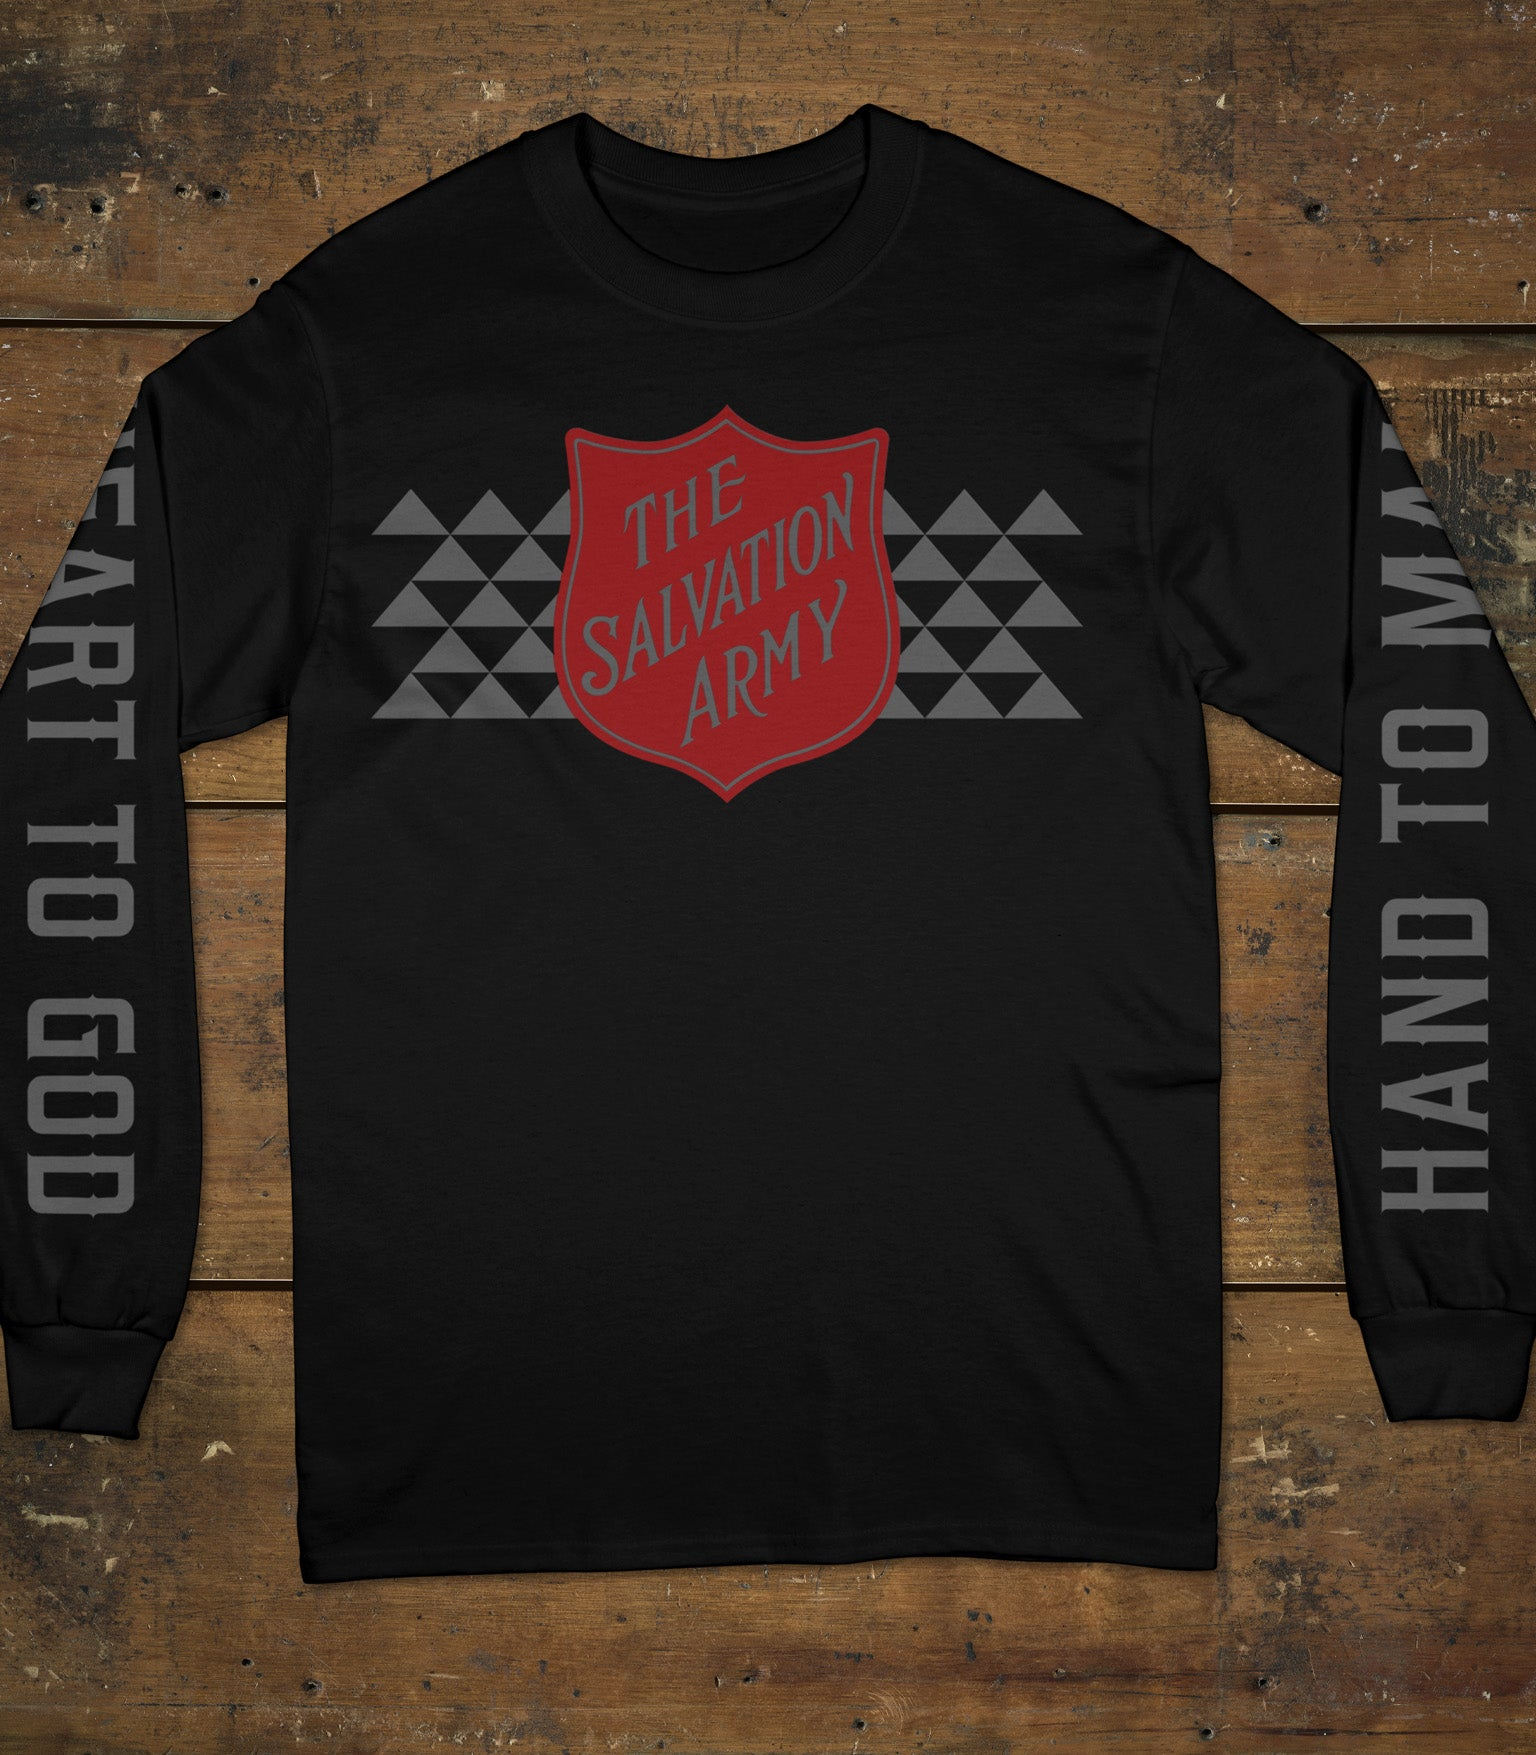 Street Team Reflective Long Sleeve Tee